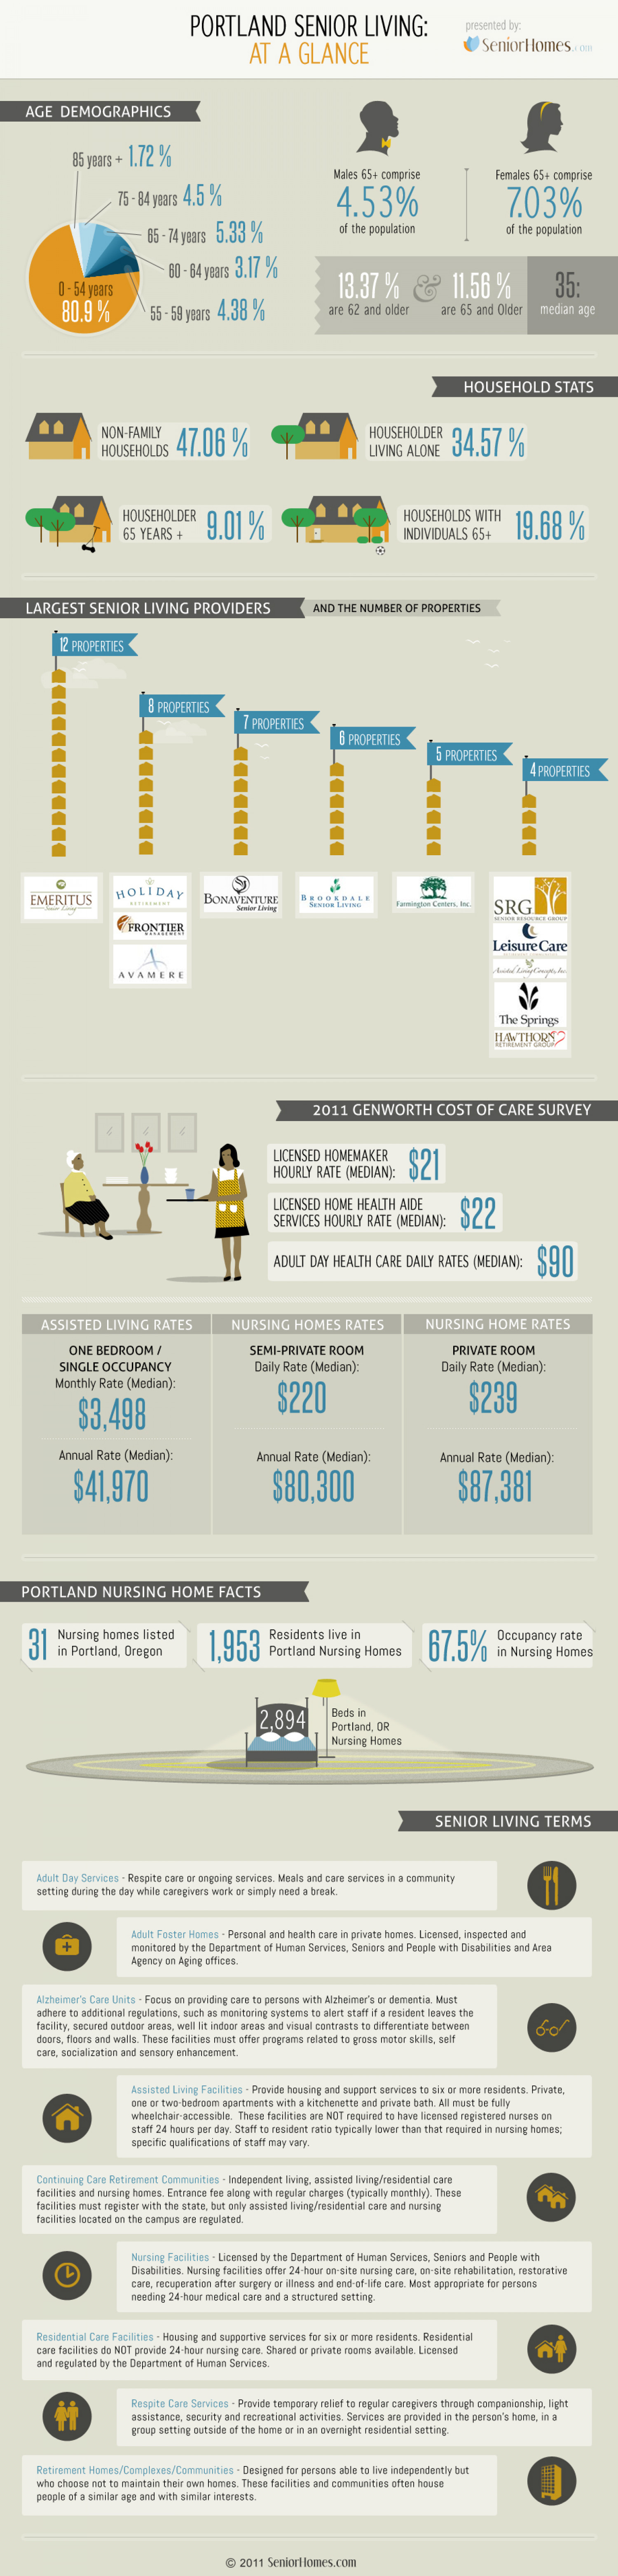 Portland Senior Living Infographic